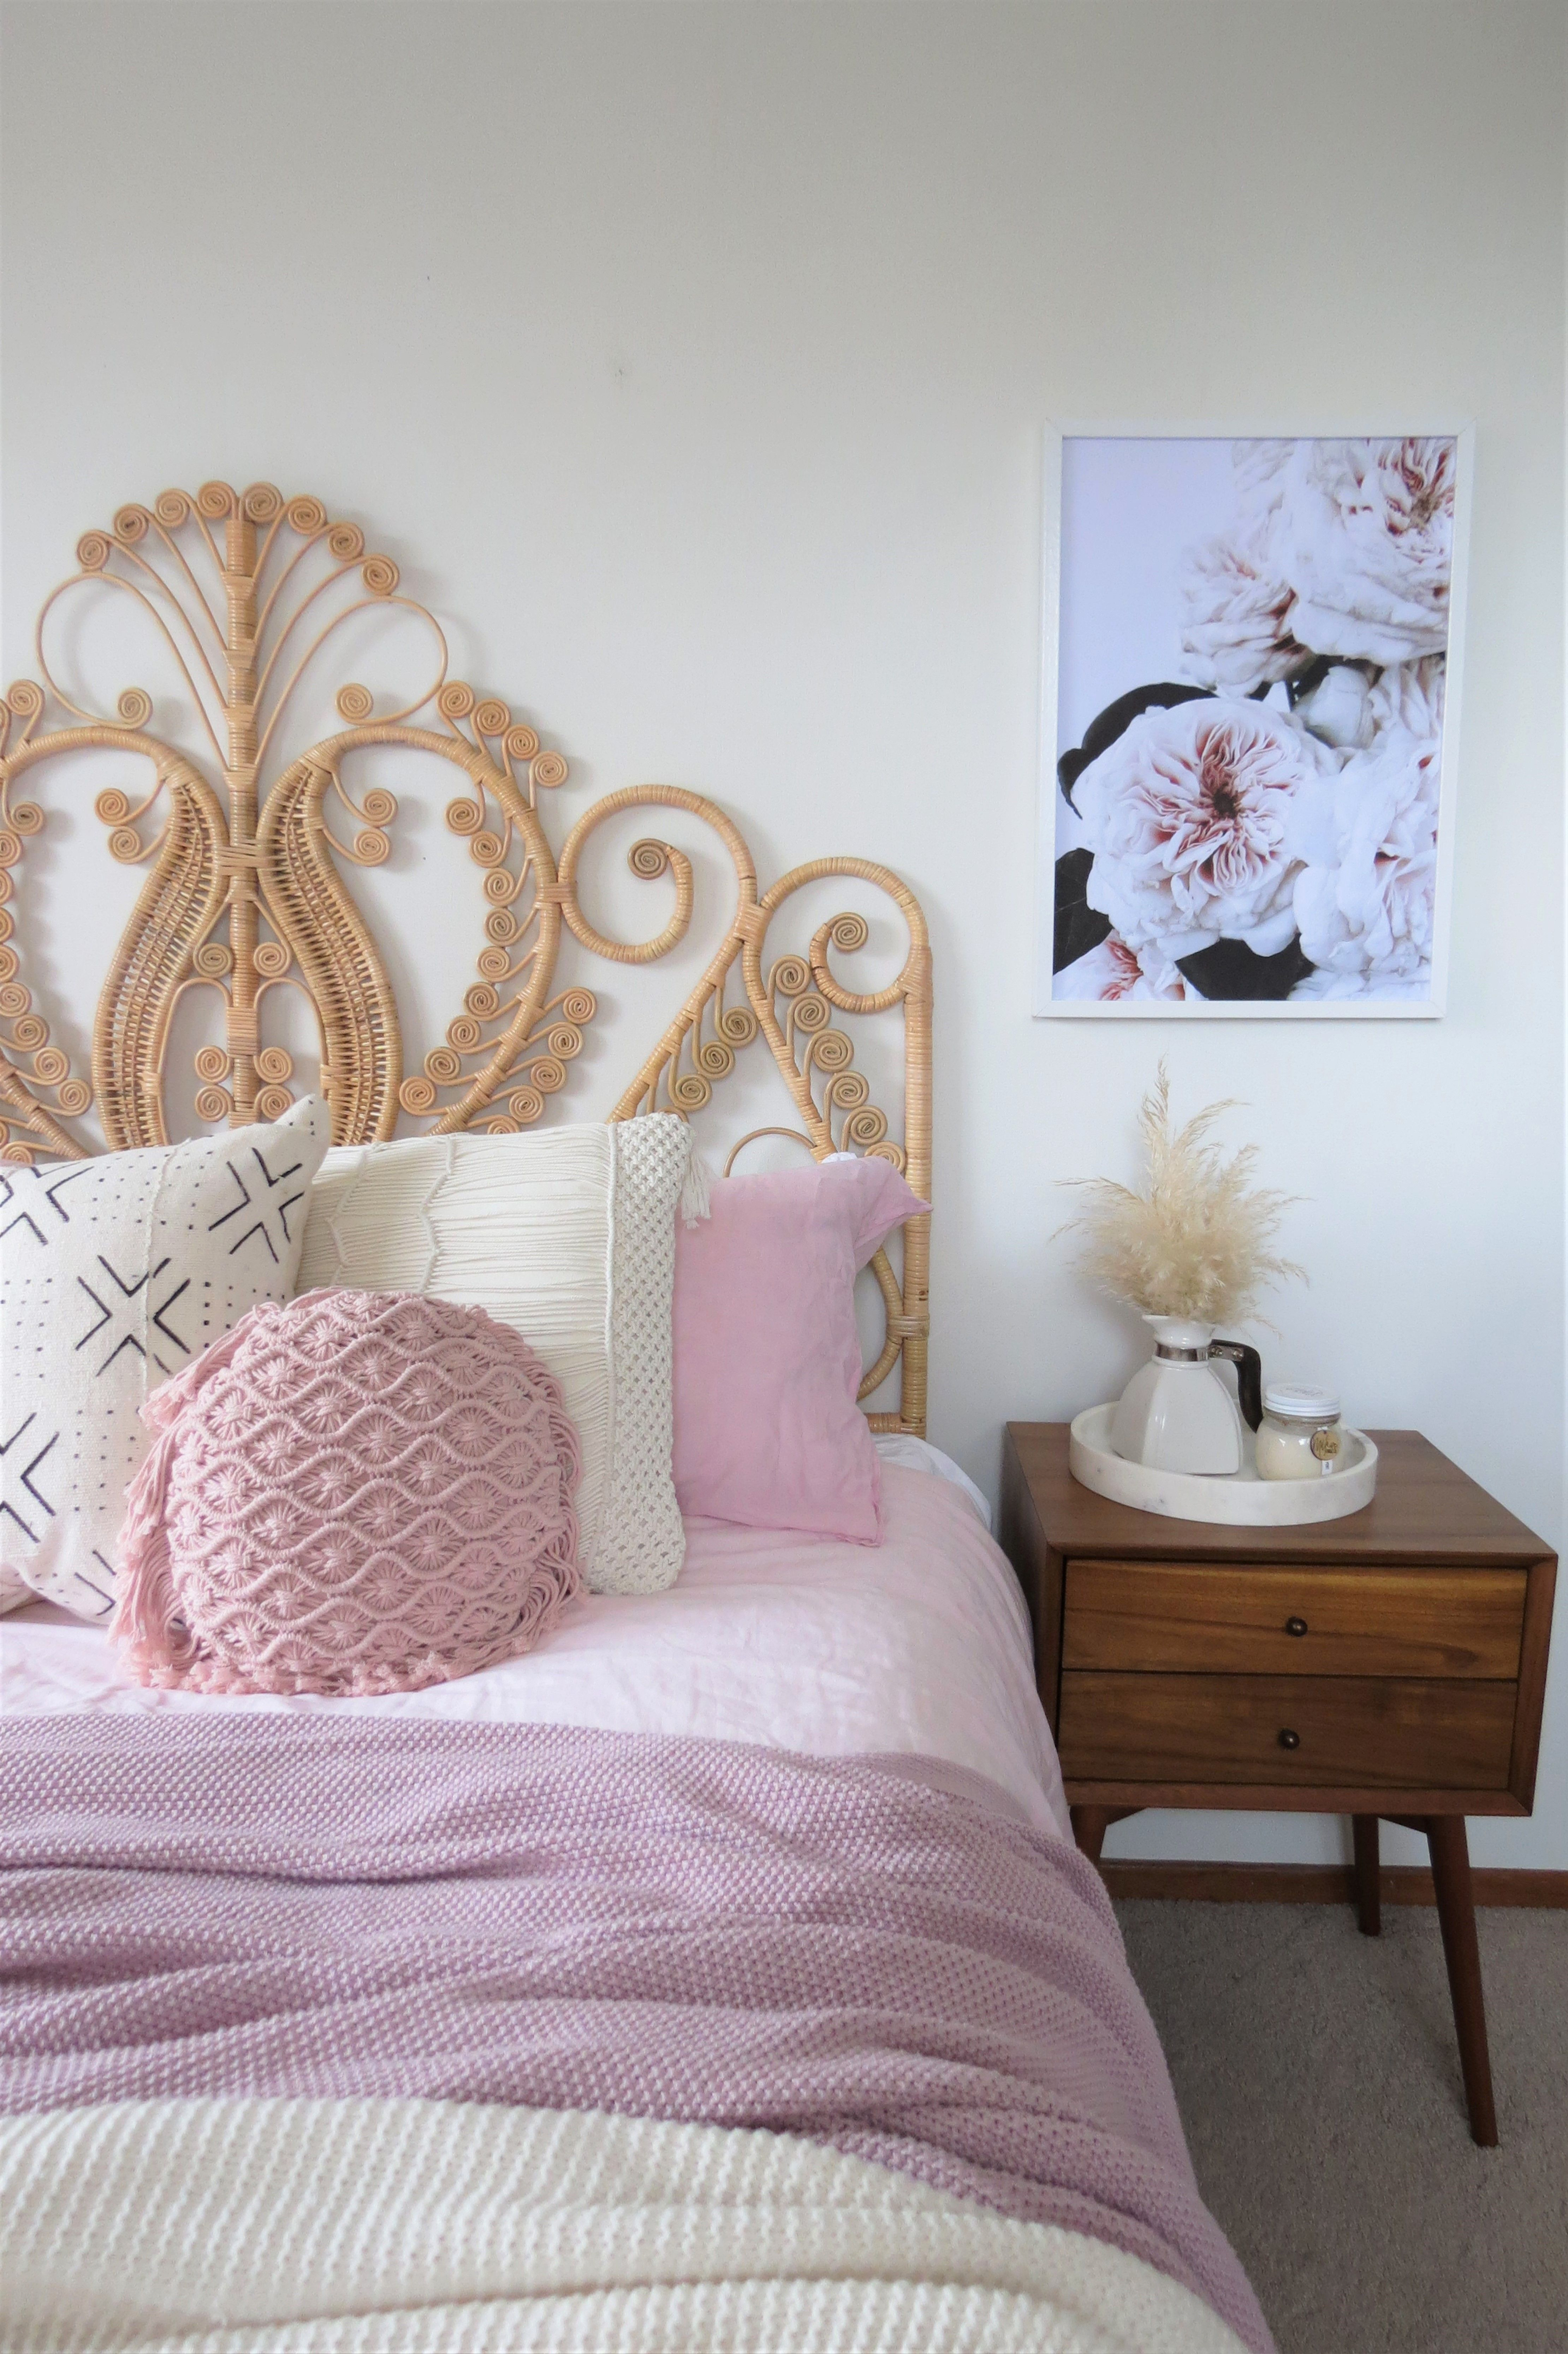 Cane Peacock headboard from The Foxes Den photo